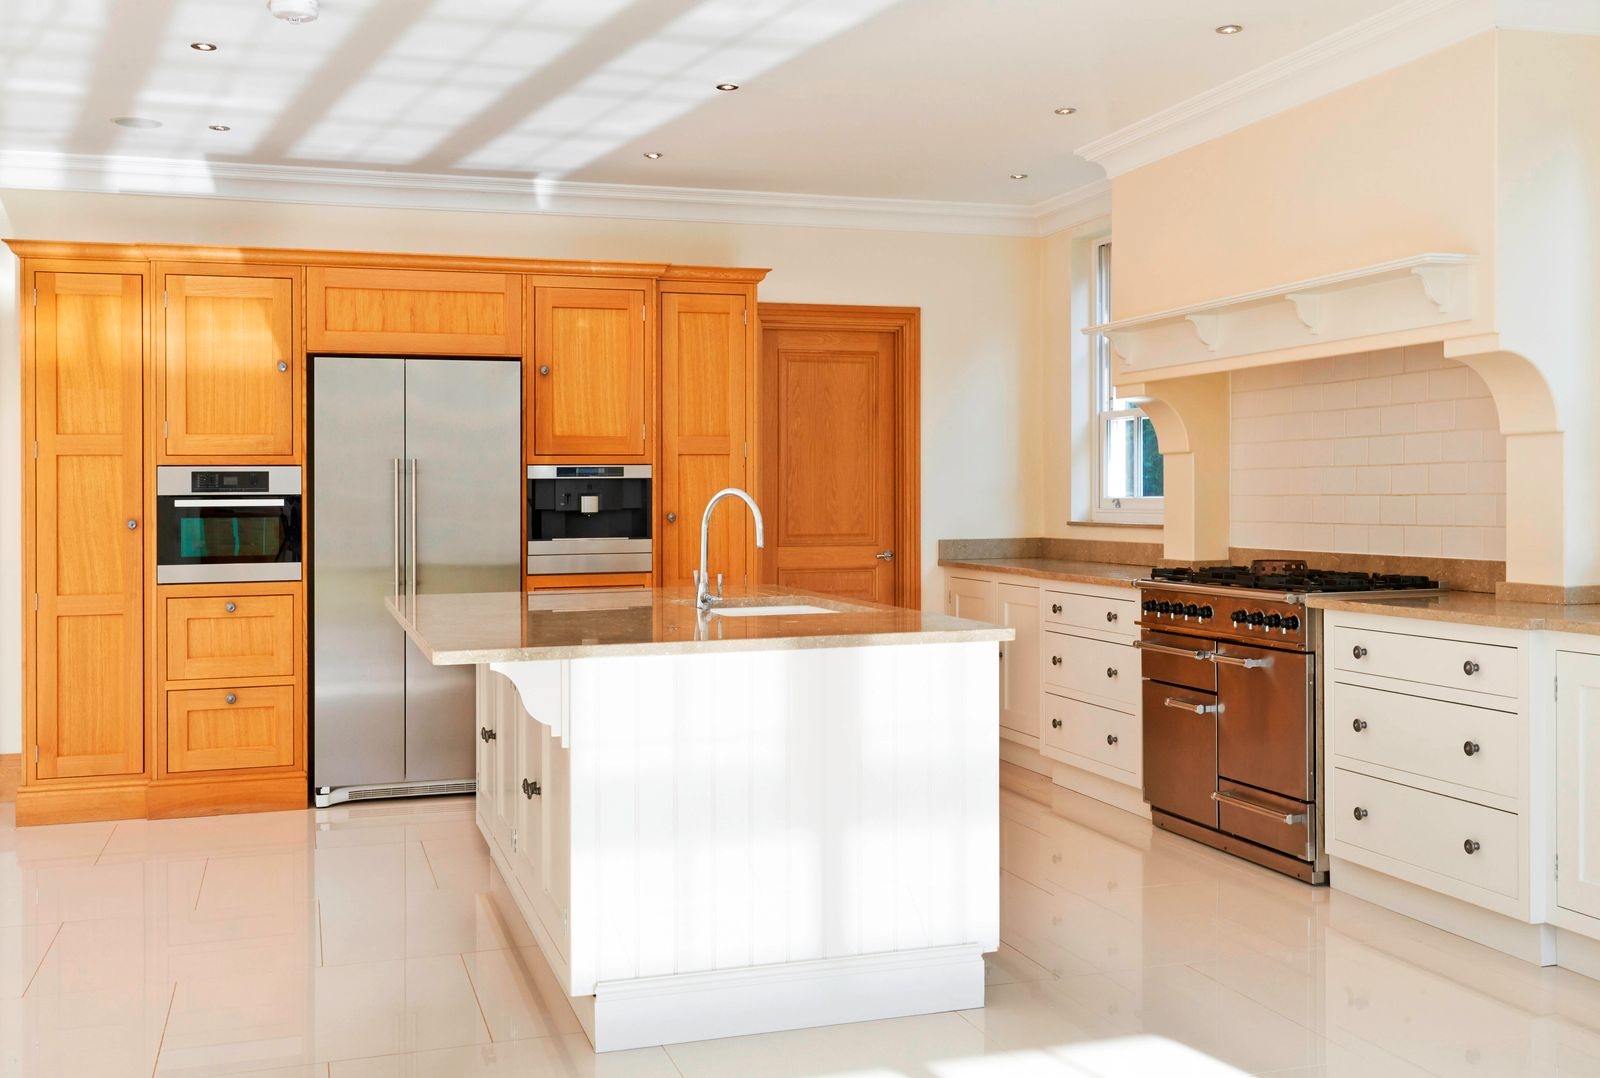 Luxury Fitted Kitchen In House,property released PUBLICATIONxINxGERxSUIxAUTxONLY ING_39524_03360